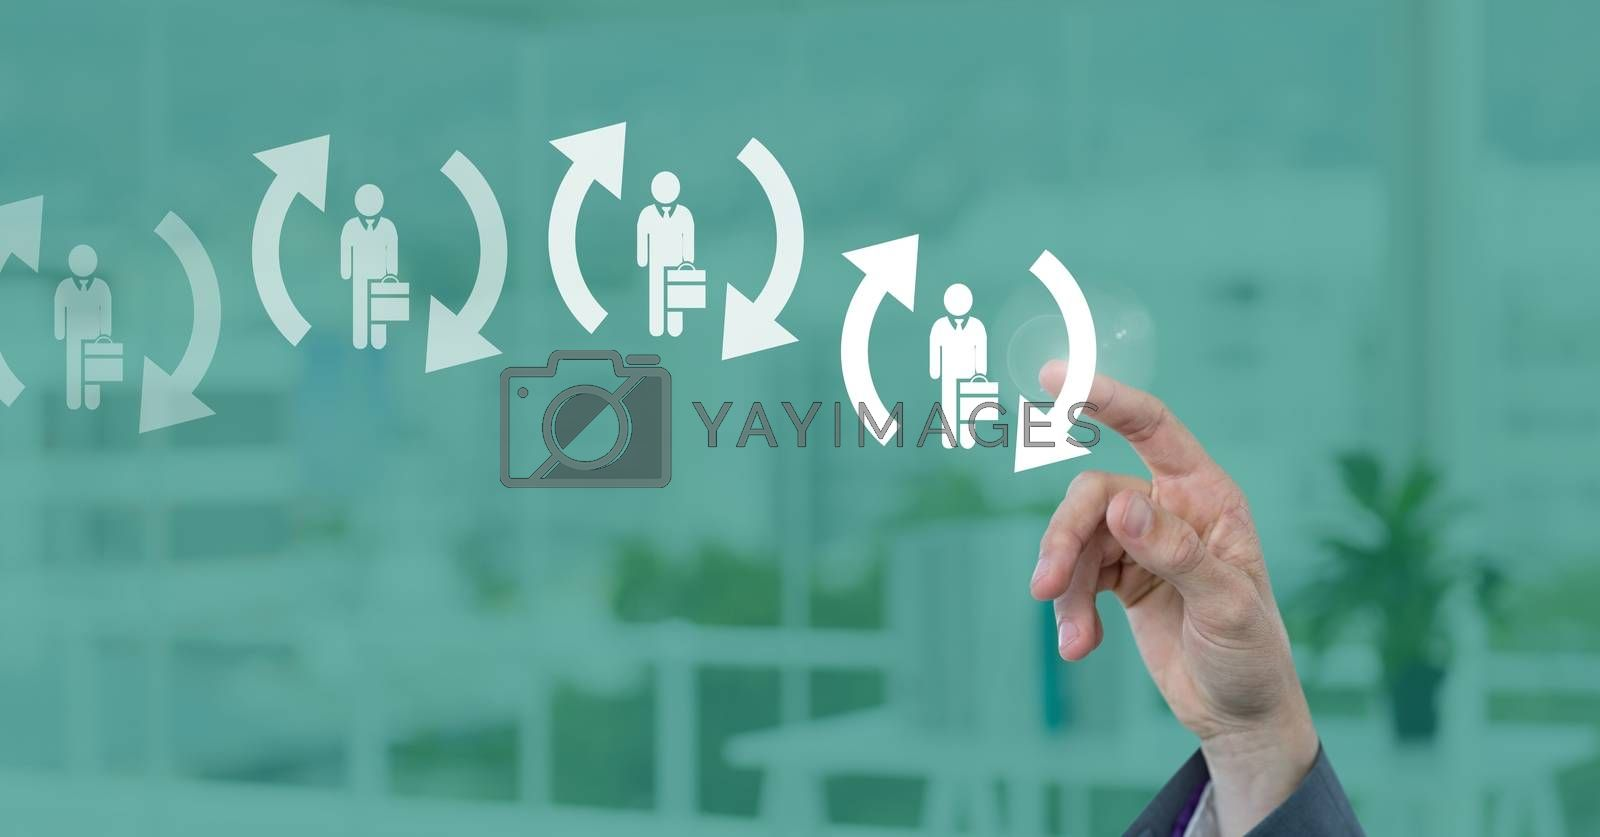 Digital composite of Businessman interacting and choosing a person from group of people icons with refresh symbol